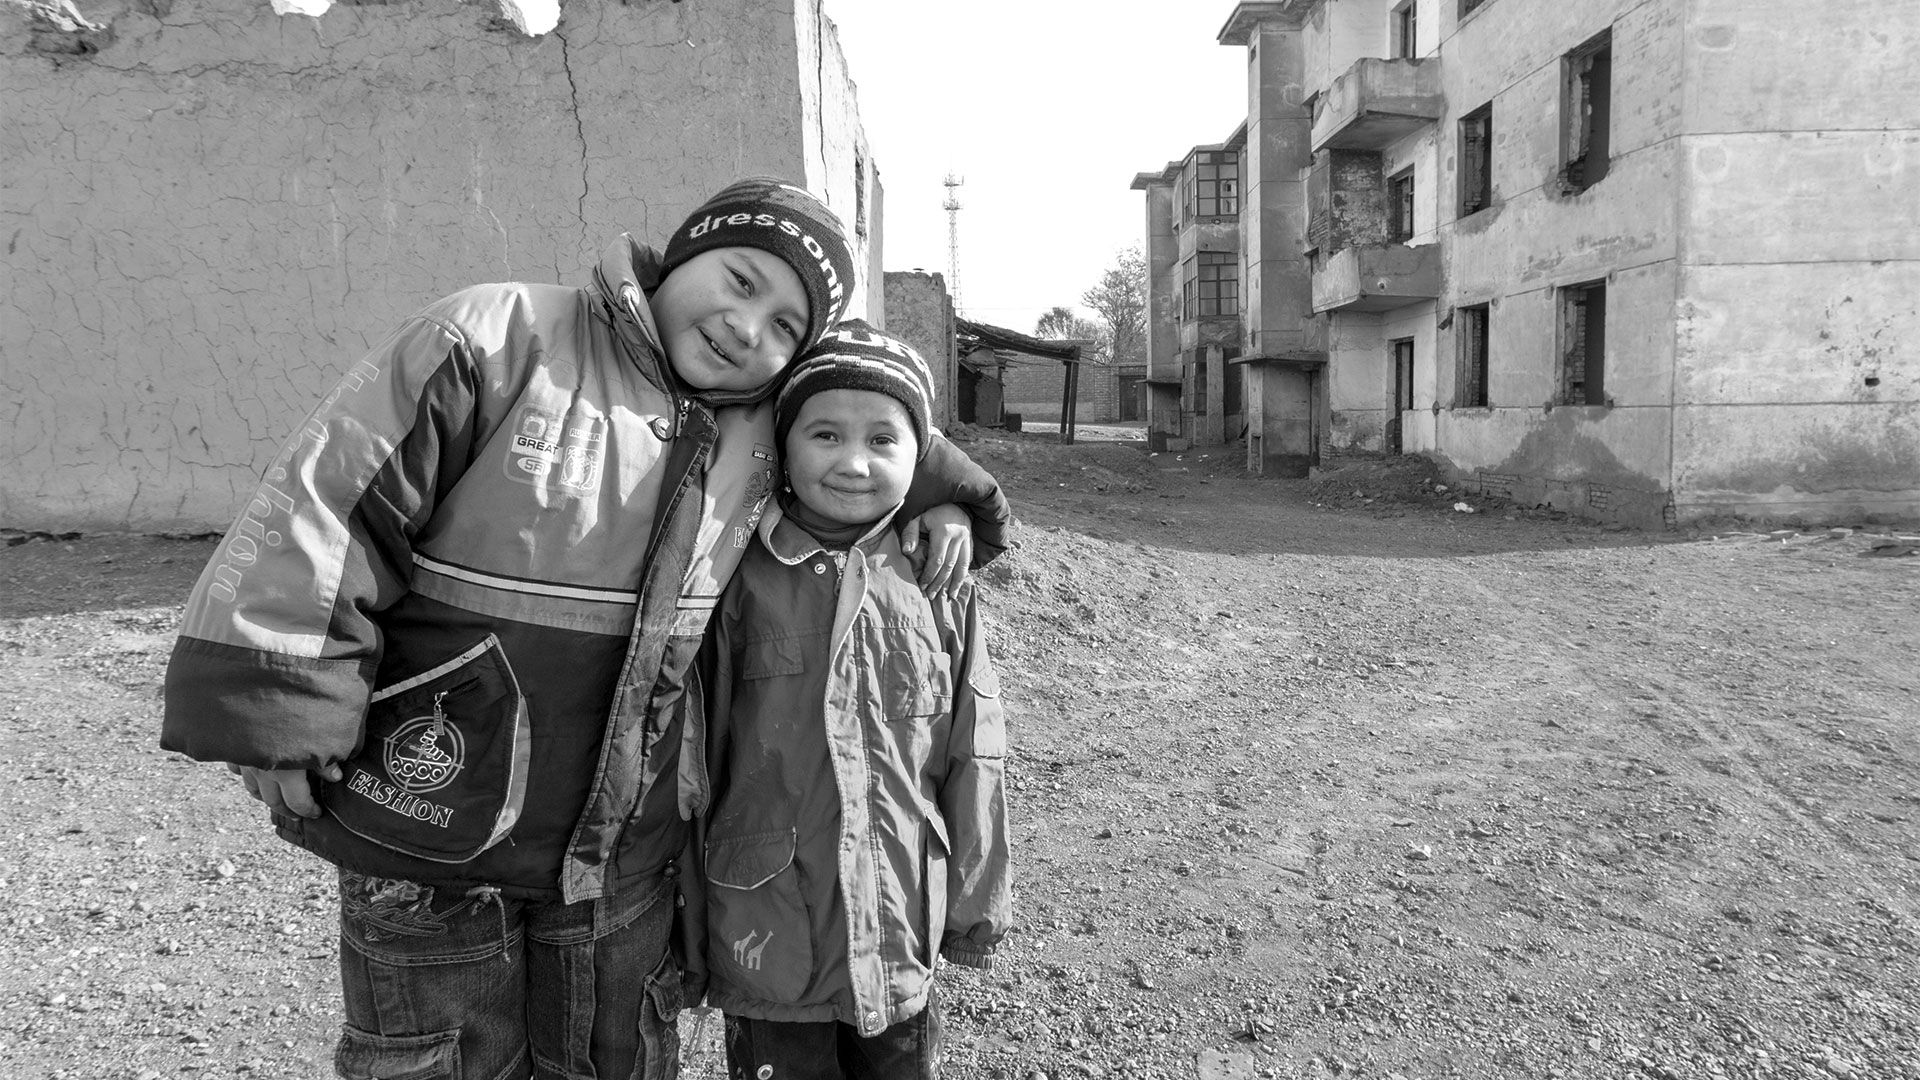 people_china14_wisckow_C1A9127-sw.jpg